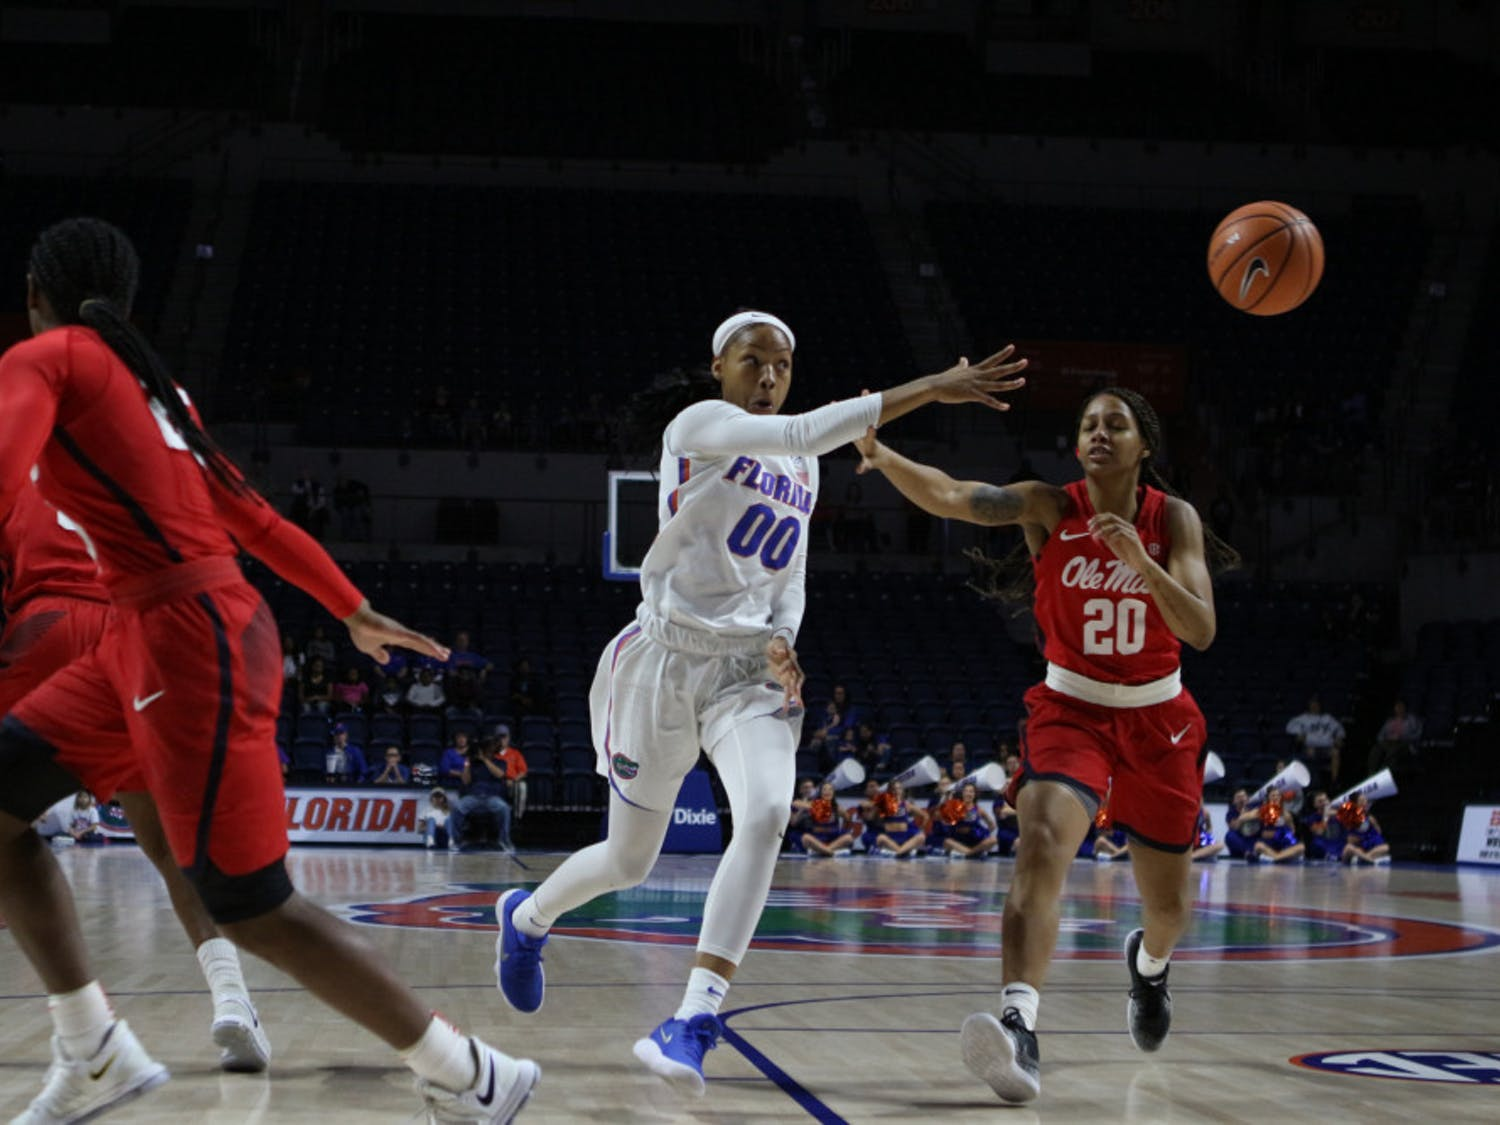 Guard Delicia Washington (00) is one of two returning Gators starters for the 2018-19 season.